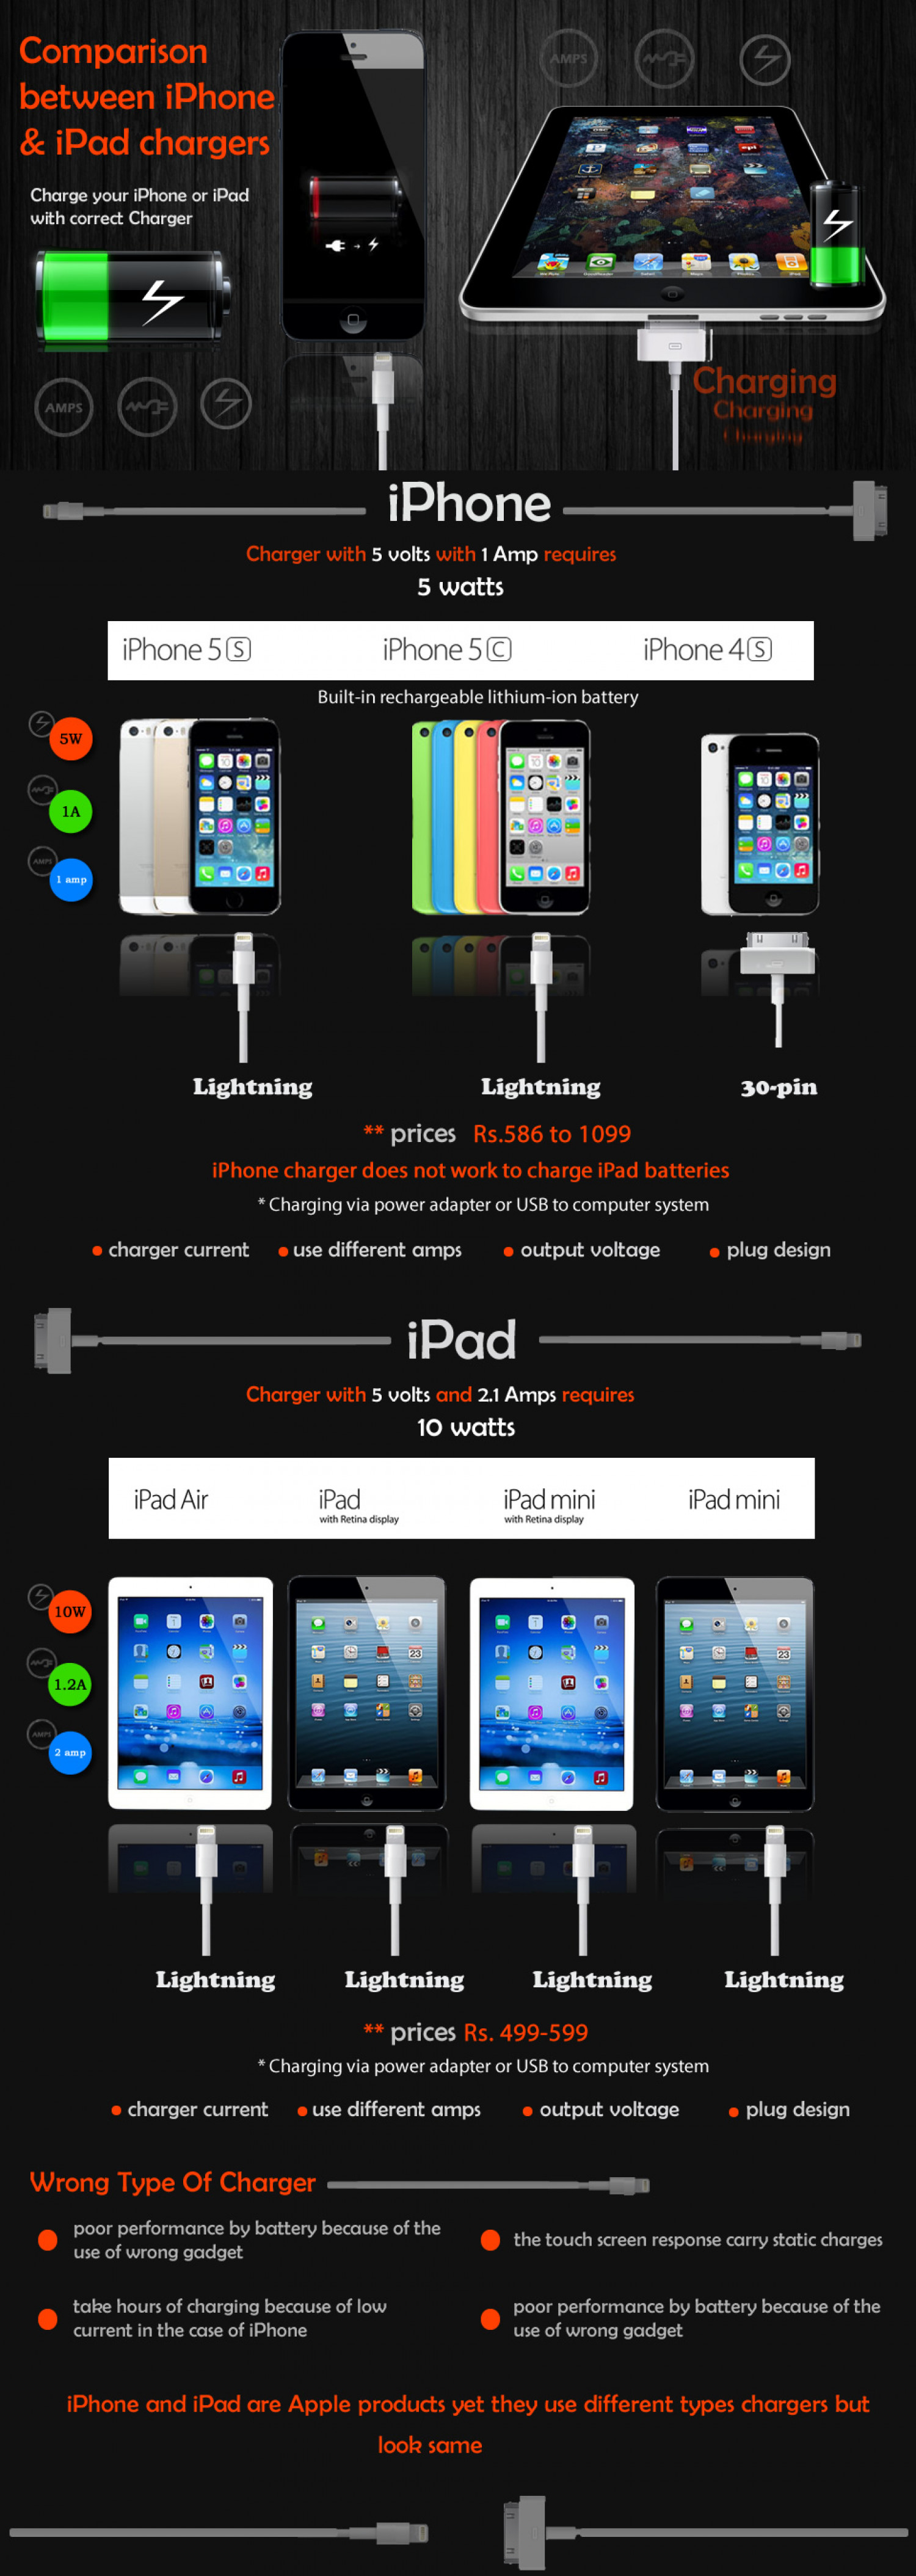 Comparison Between iPhone & iPad Chargers Infographic